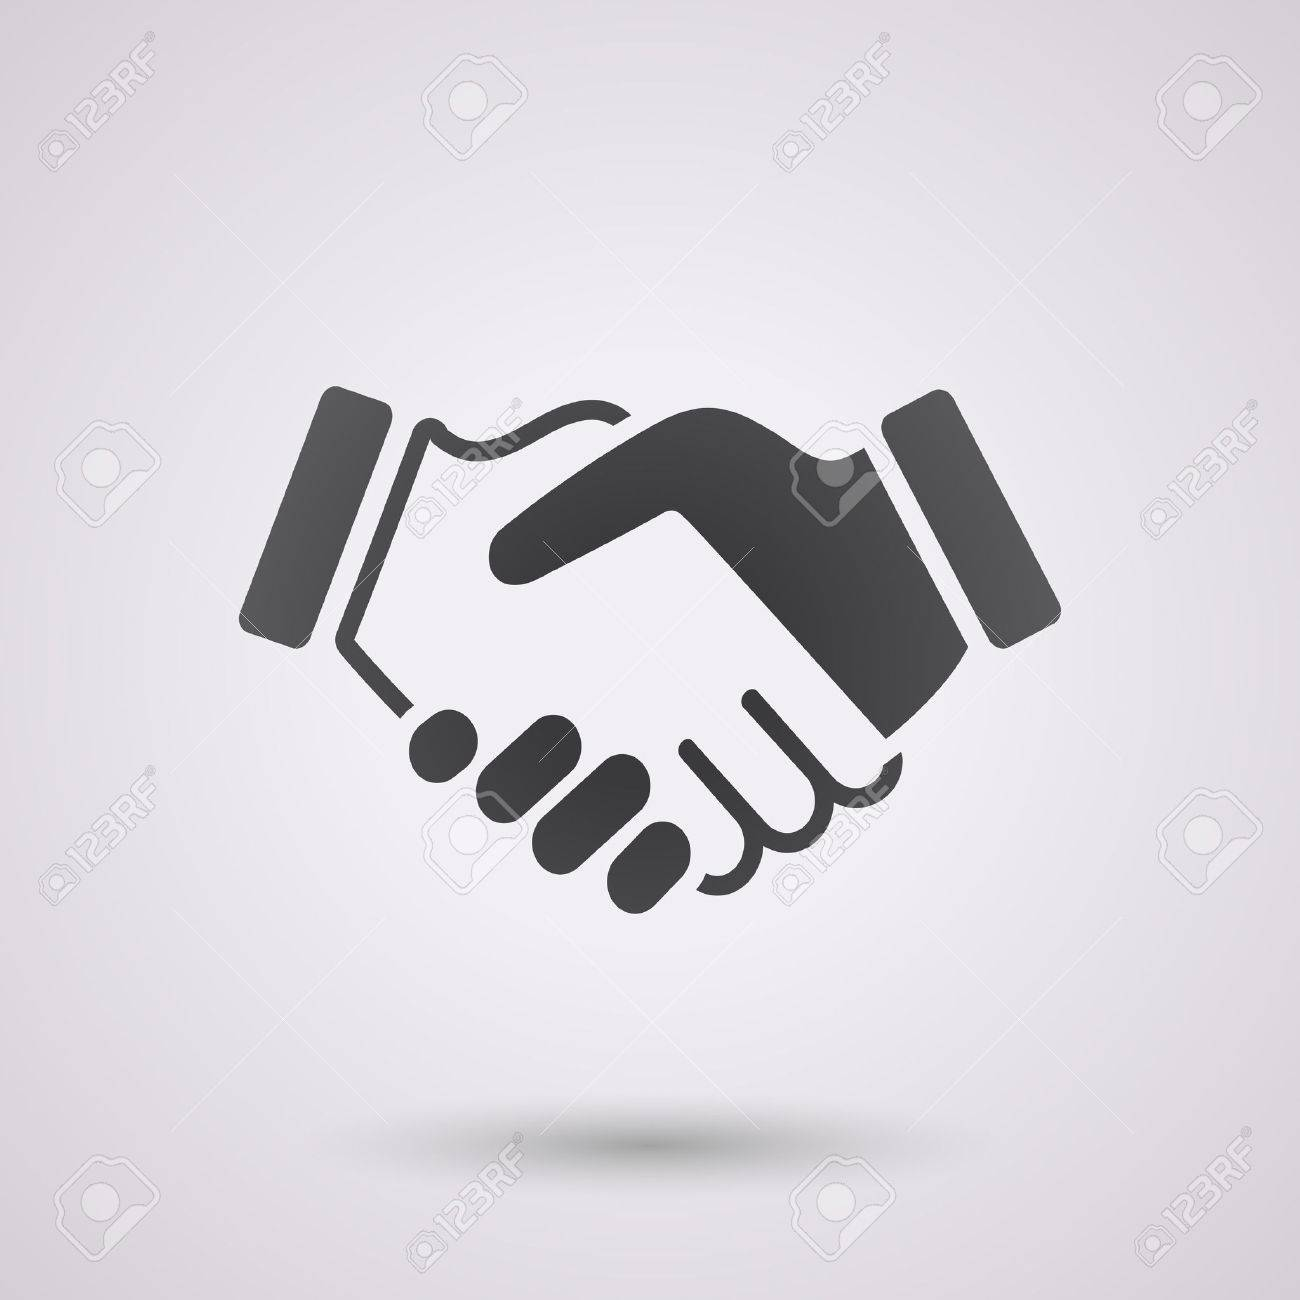 black icon handshake. background for business and finance - 40445705